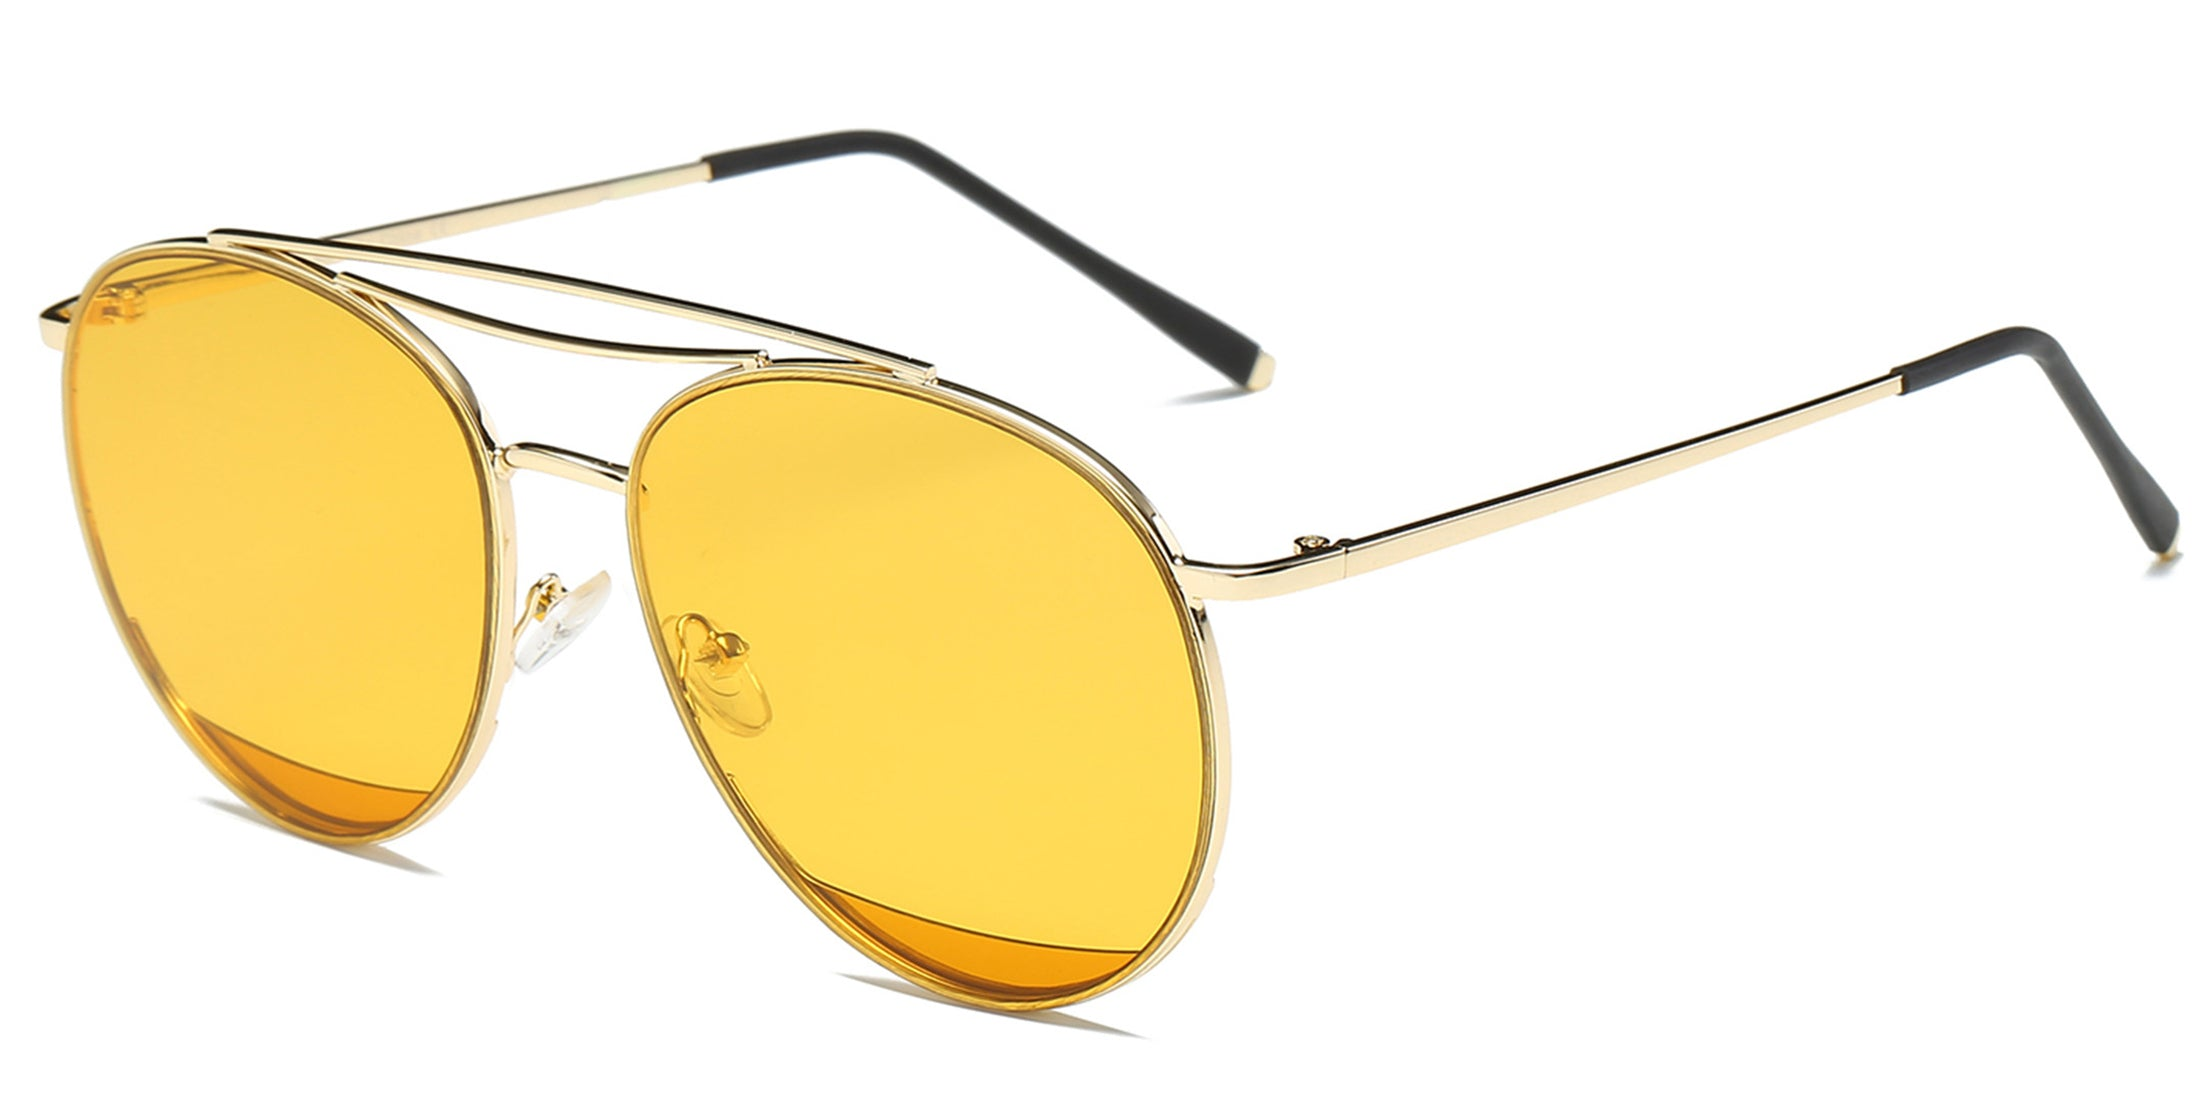 Akcessoryz-Women round yellow lens with gold frame sunglasses